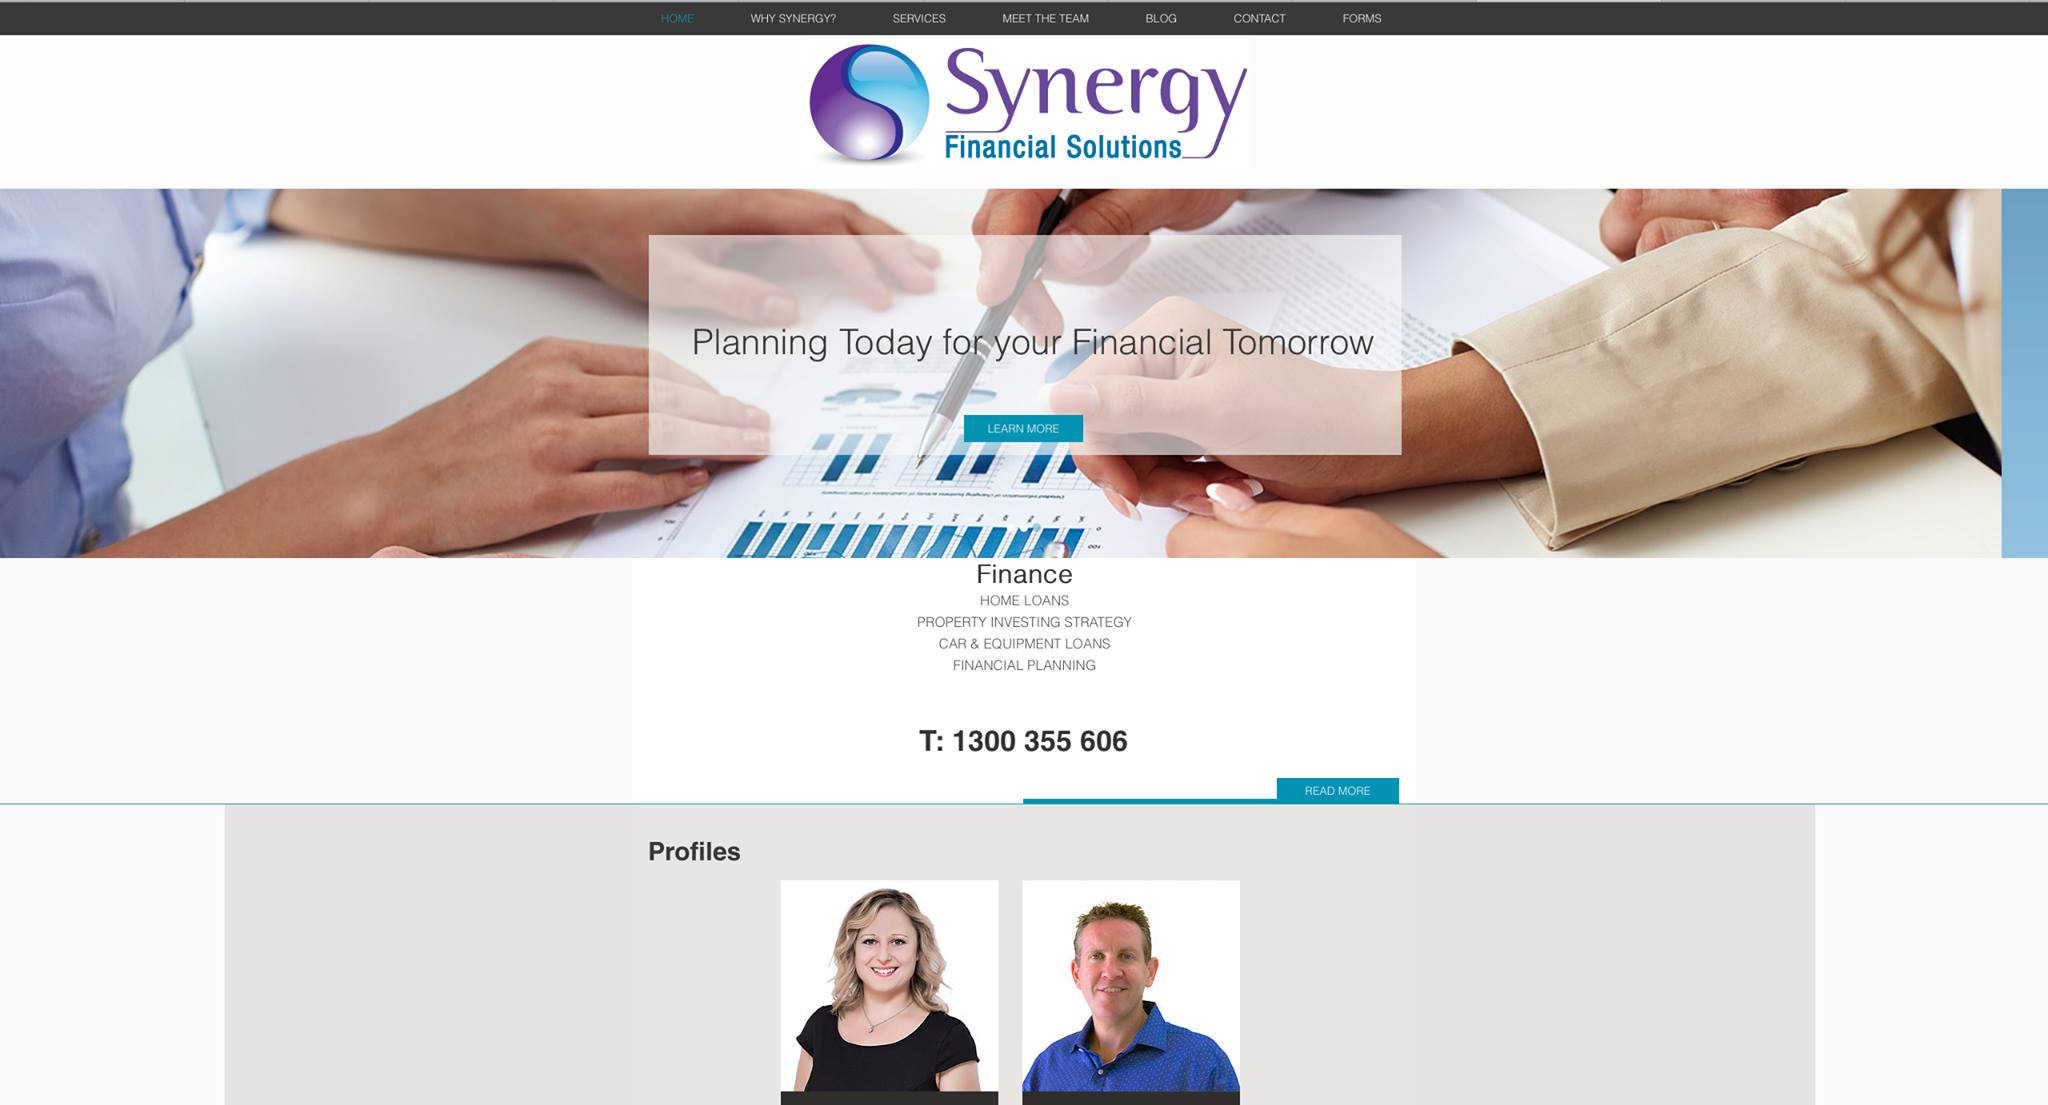 Synergy Financial Solutions Website